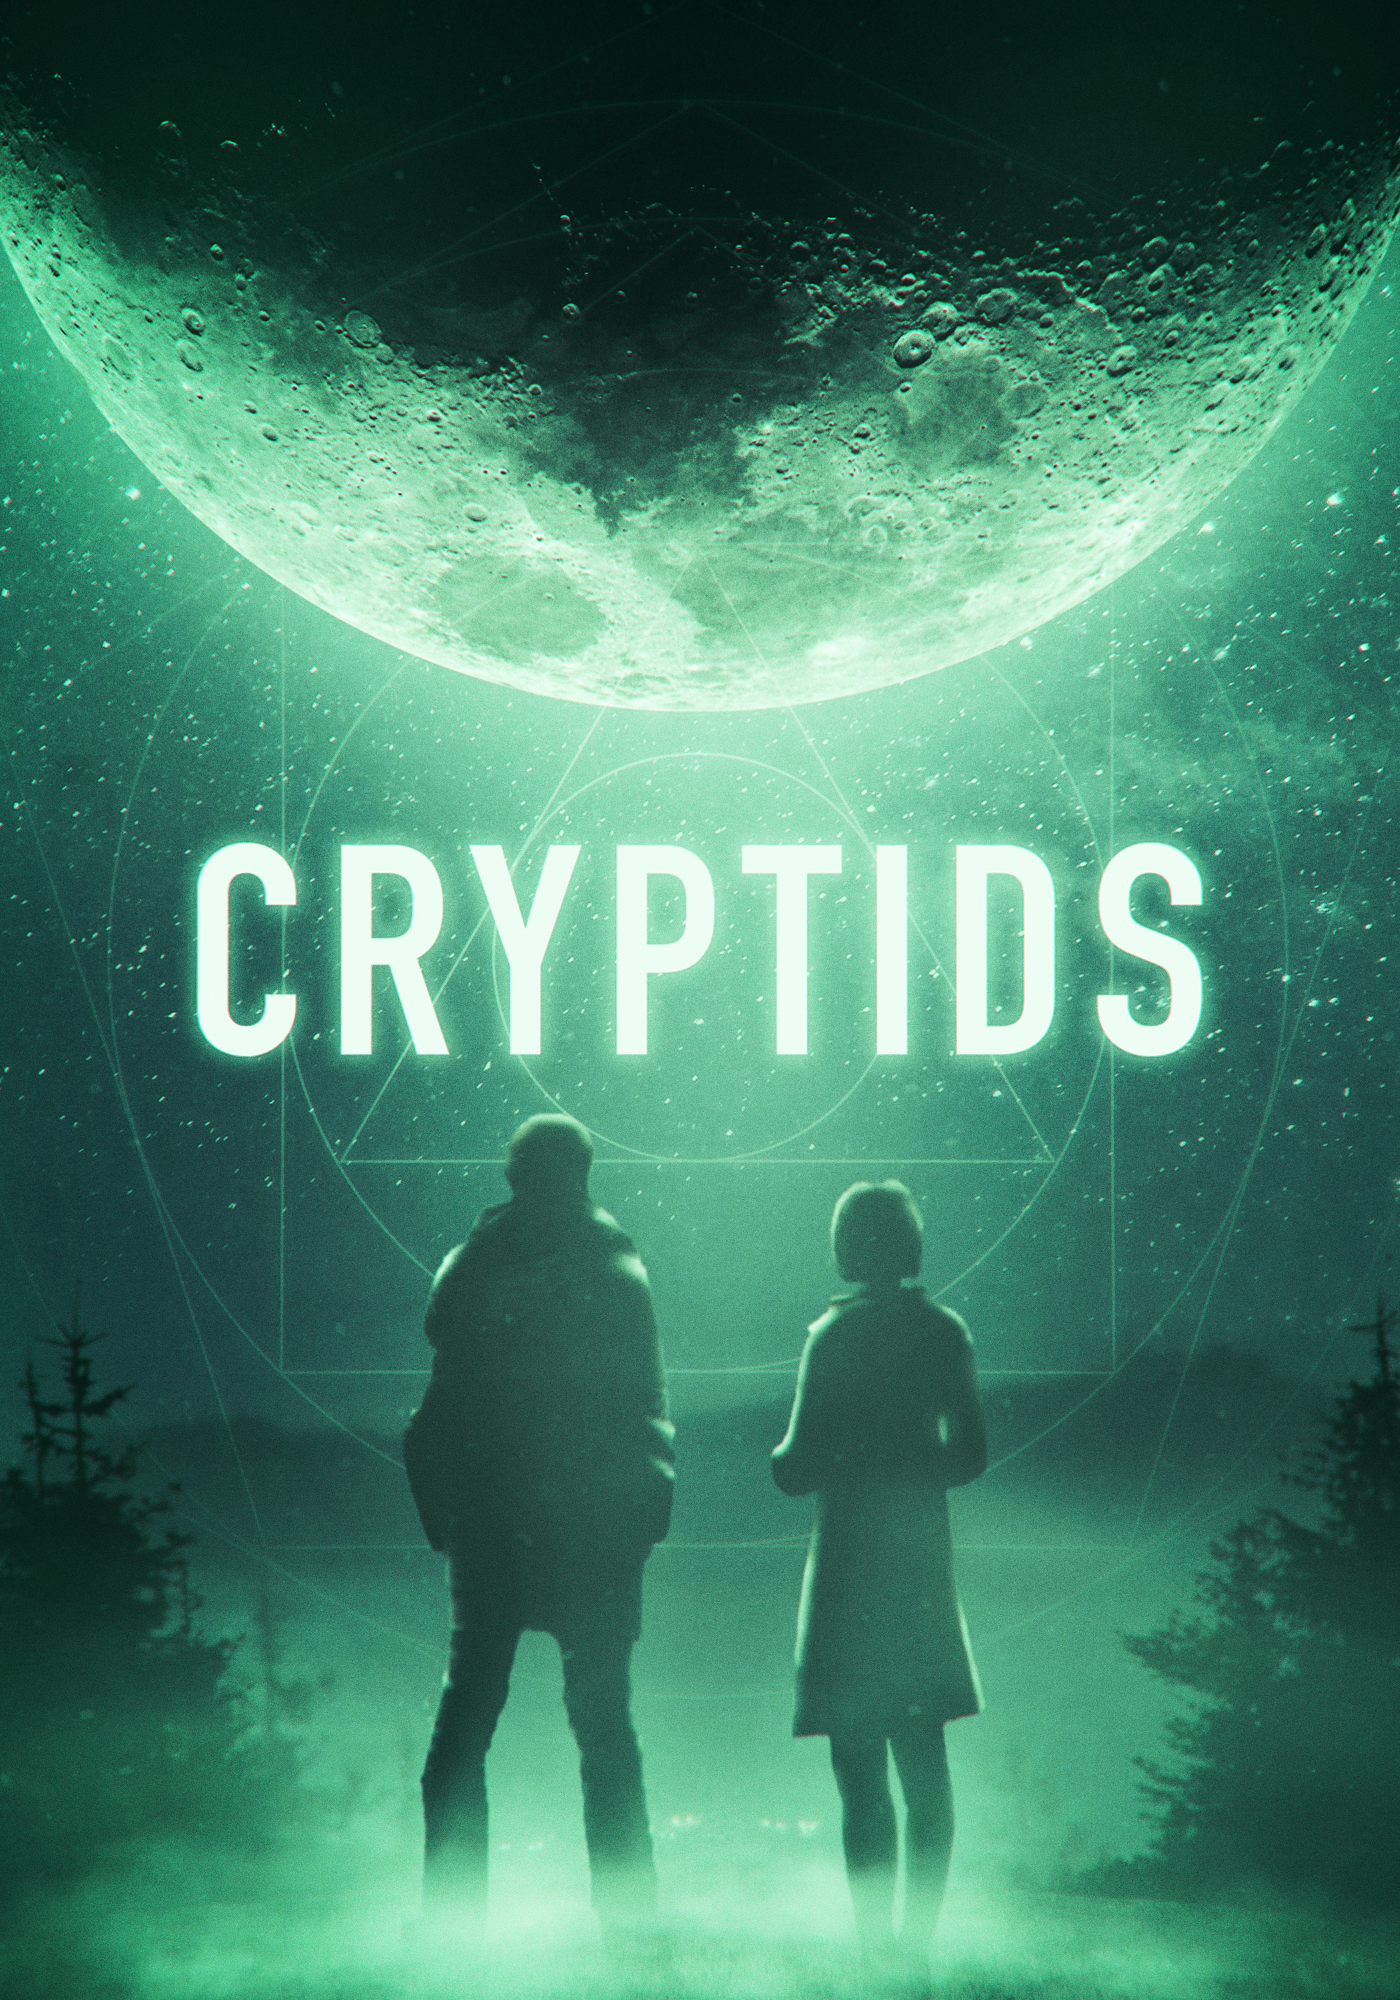 Cryptids- The Bug And The Boot